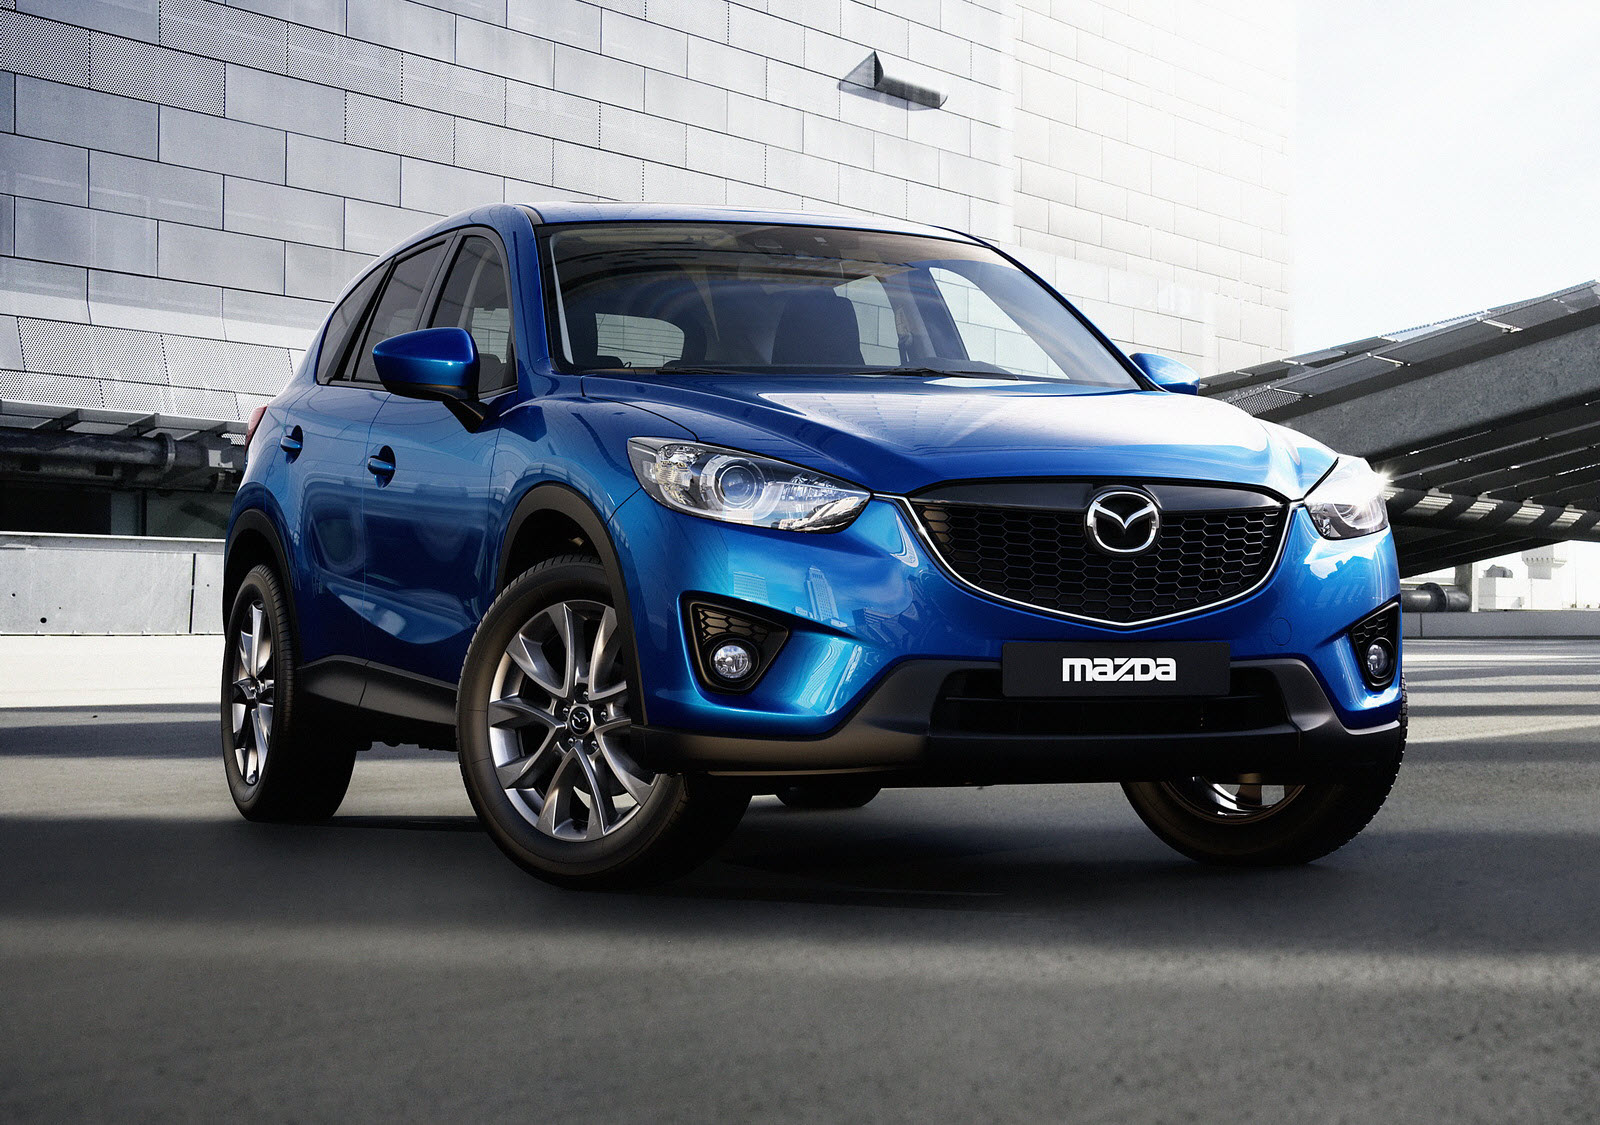 all new mazda cx 5 a new era of mazda vehicles. Black Bedroom Furniture Sets. Home Design Ideas